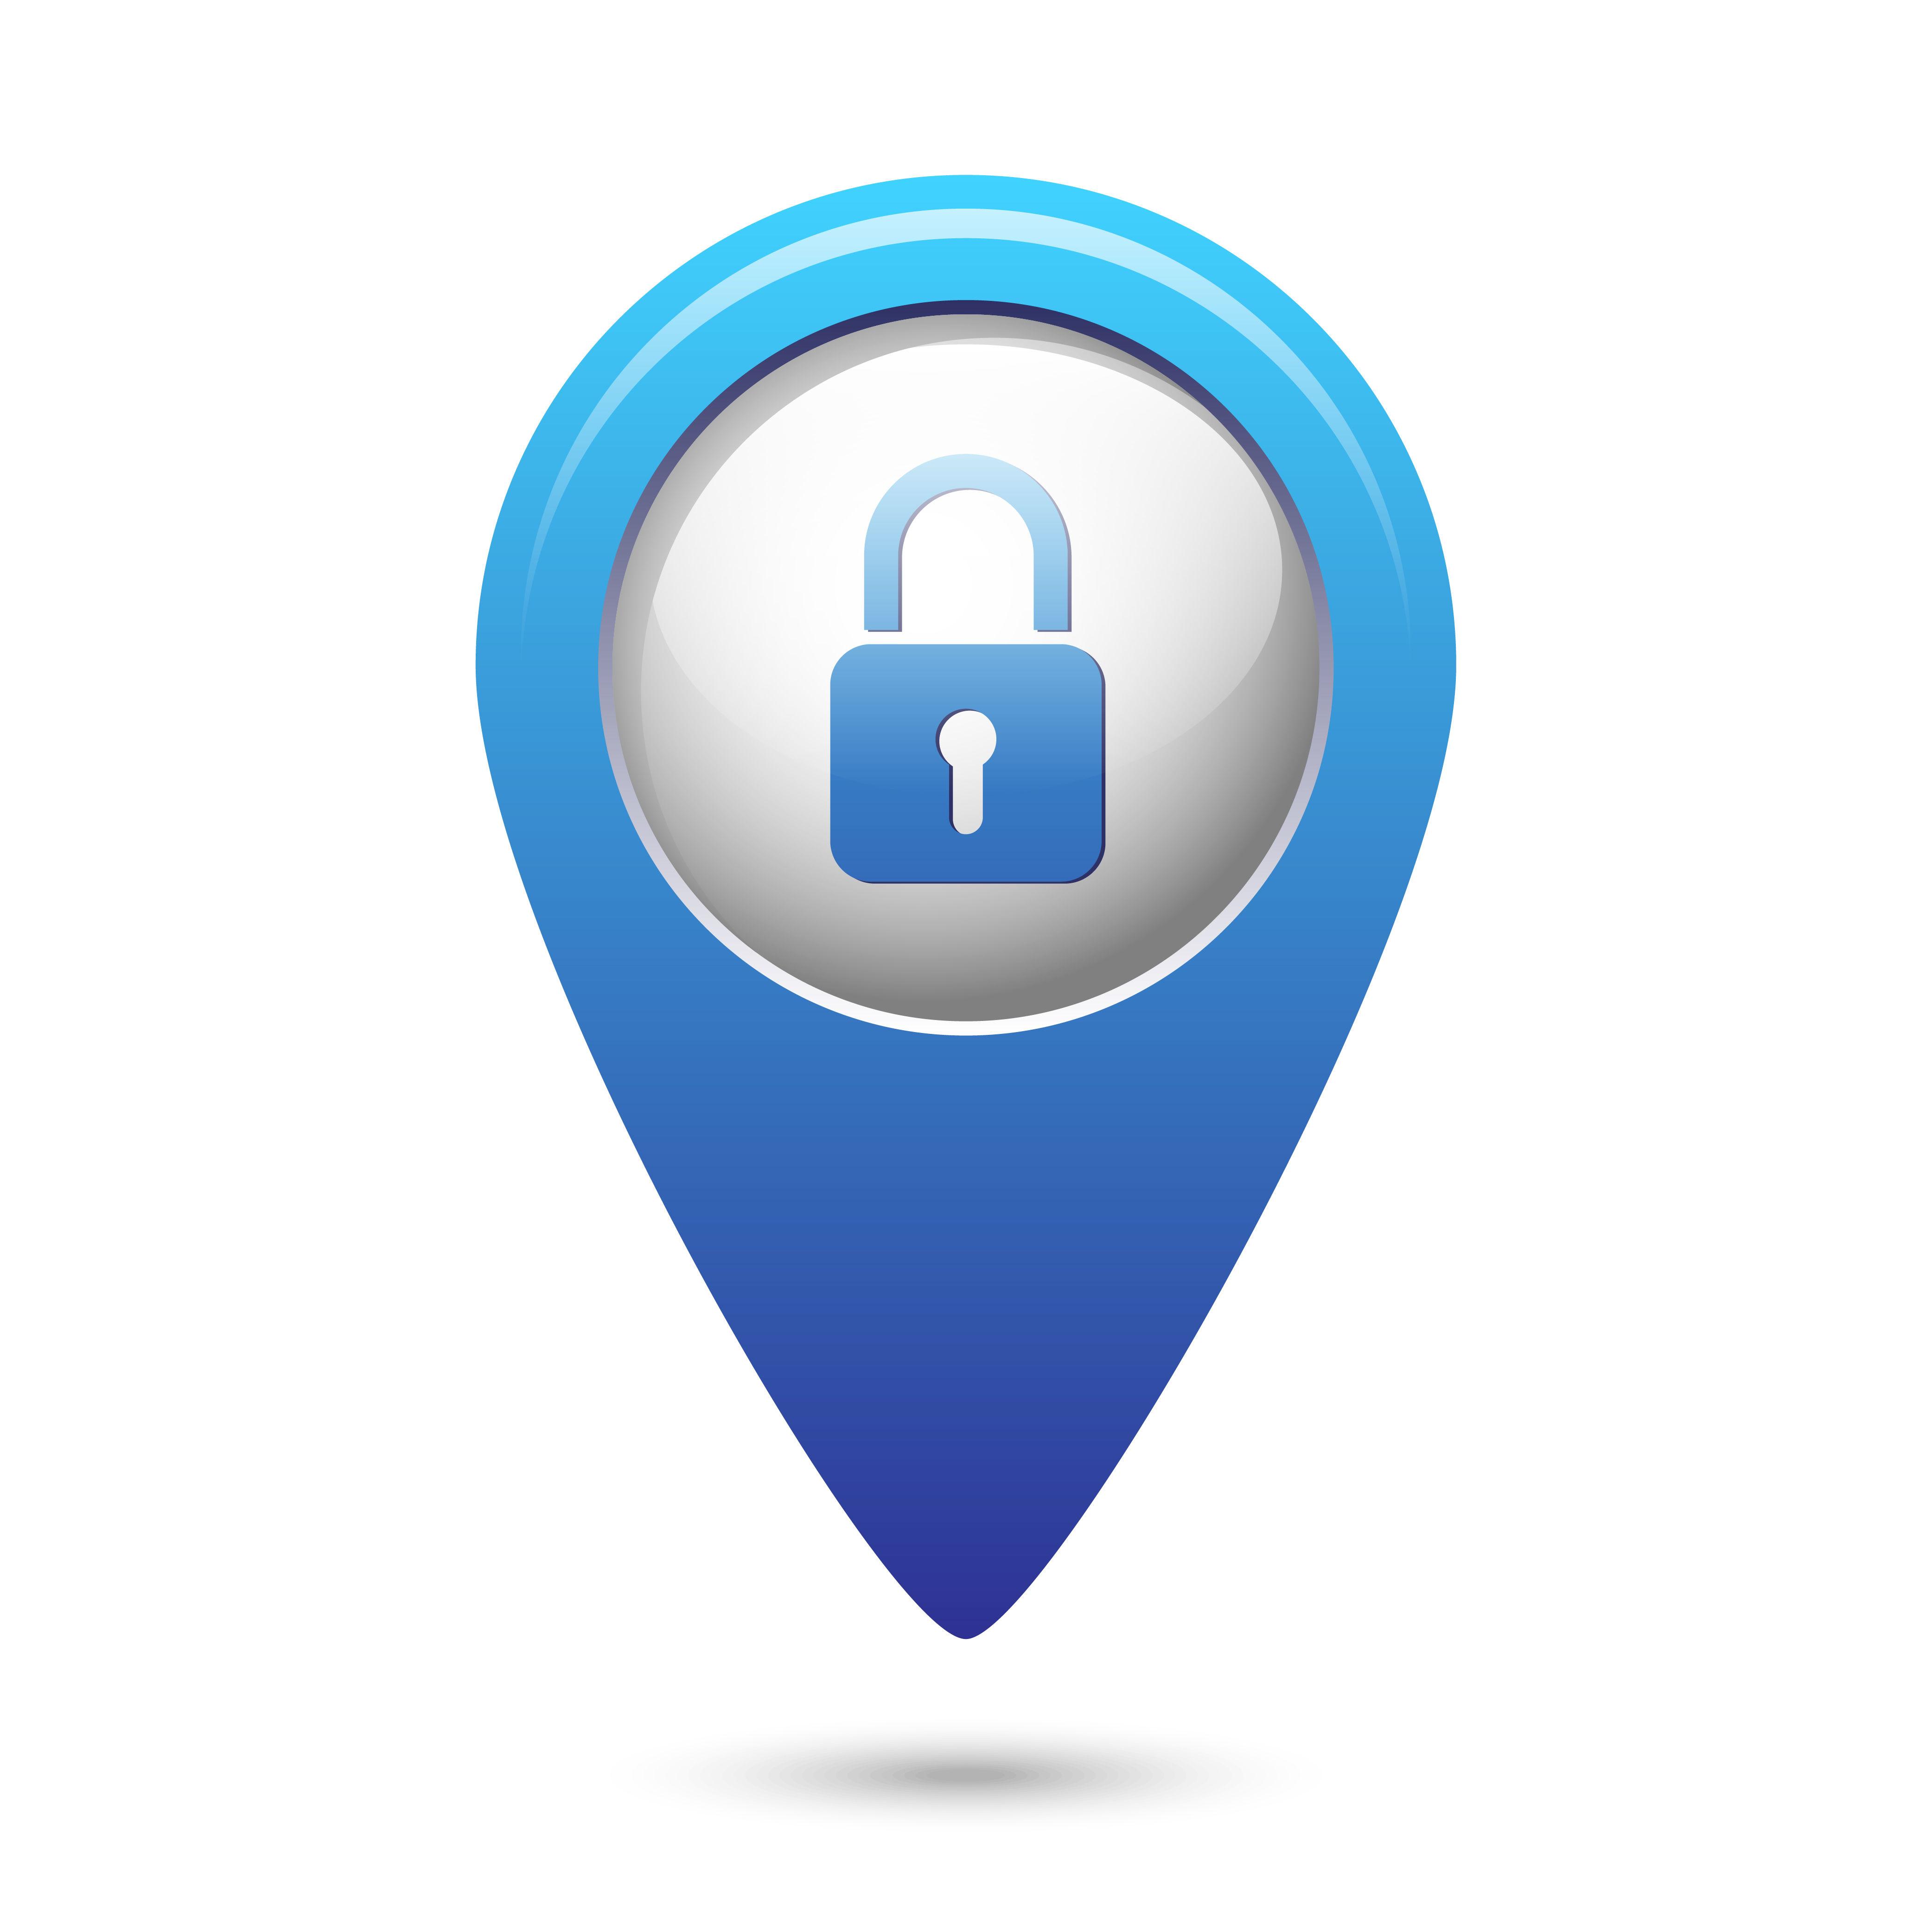 Map pointer with closed lock icon. Vector illustration